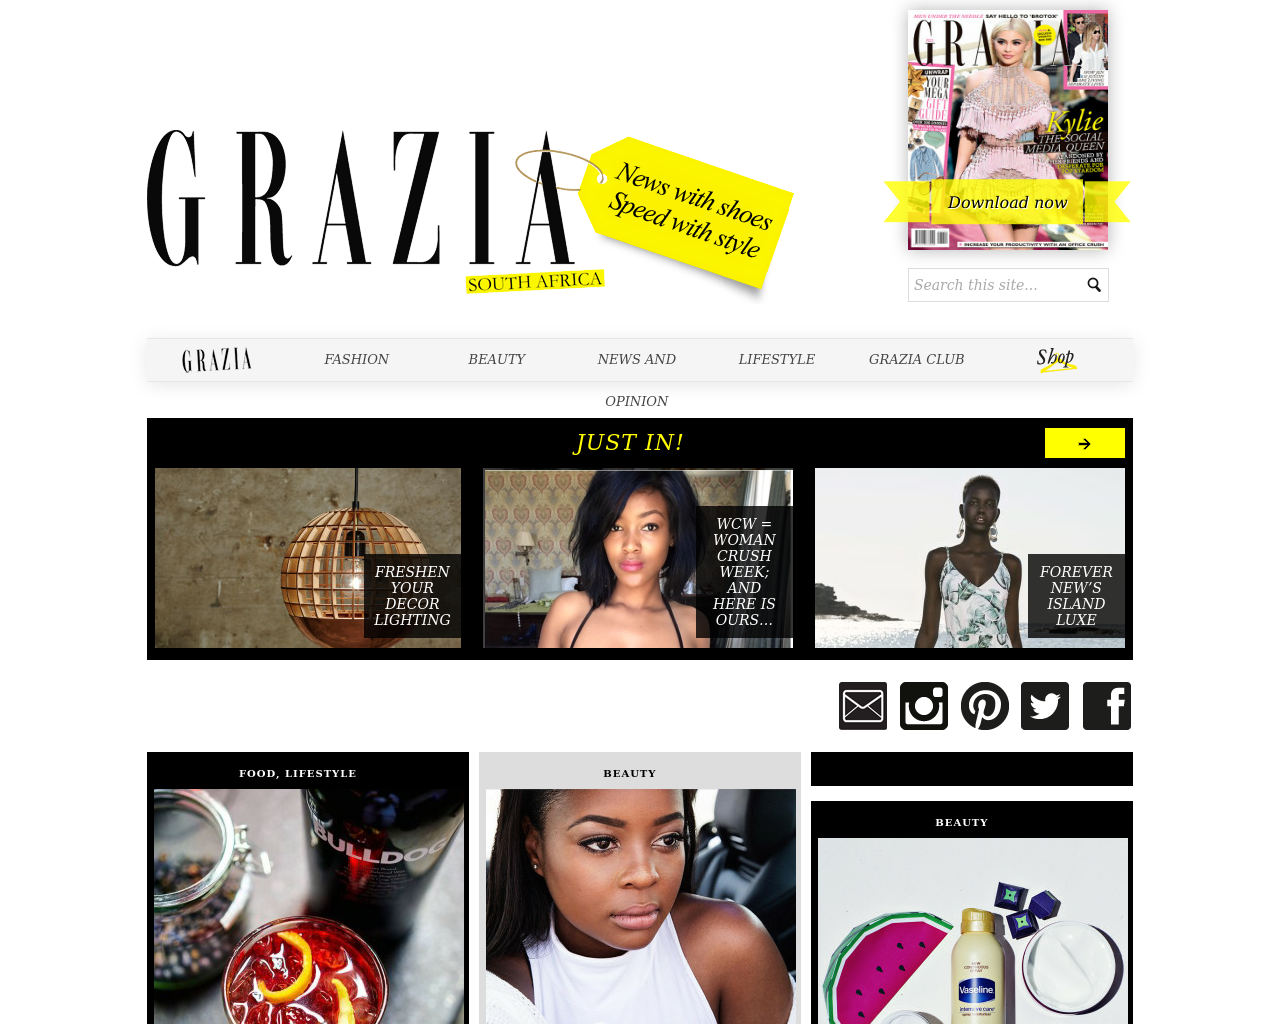 Grazia-South-Africa-Advertising-Reviews-Pricing